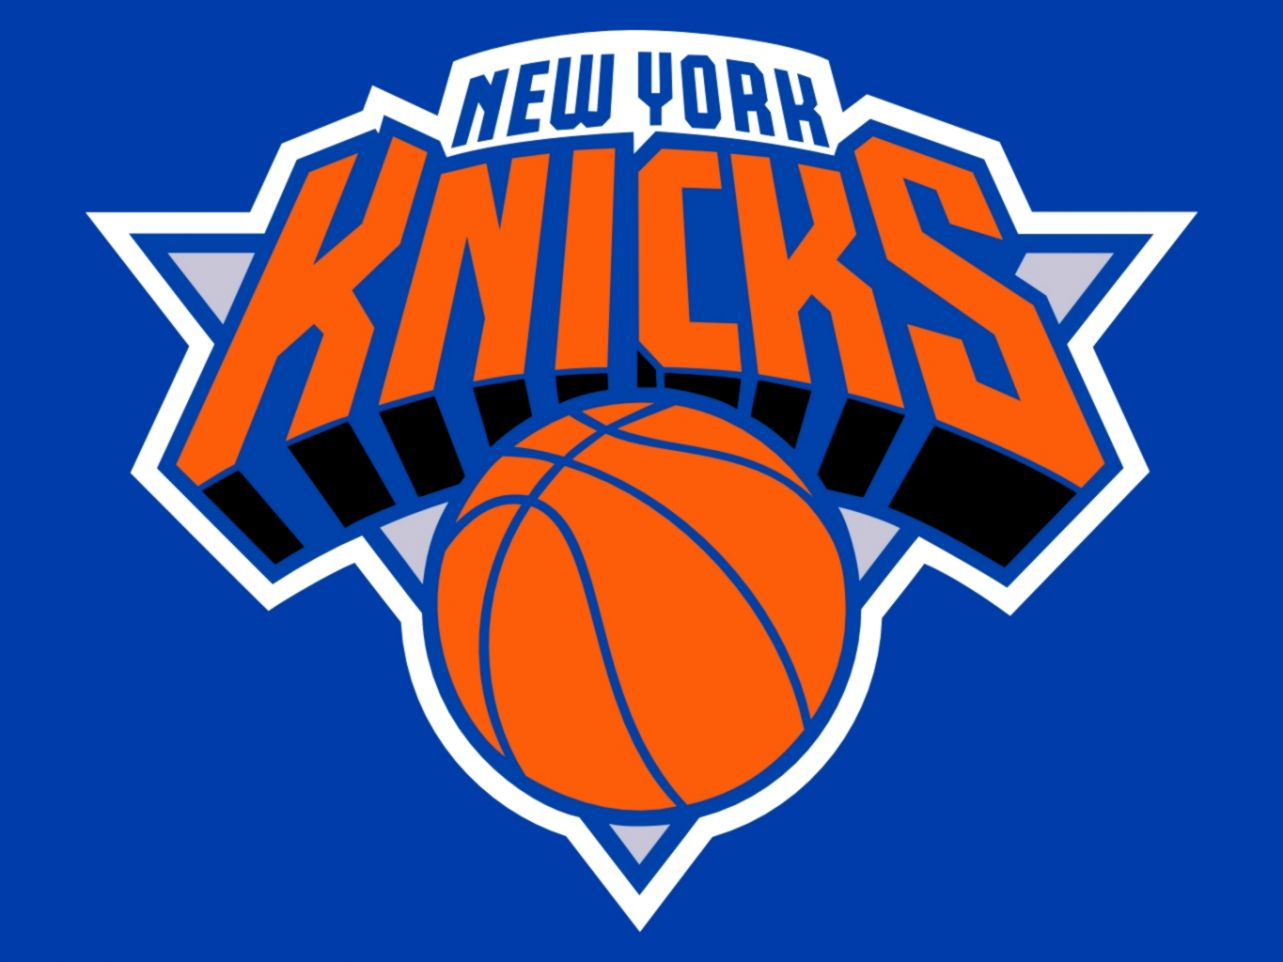 New York Knicks Iphone Wallpaper   Wallpapers Colorful